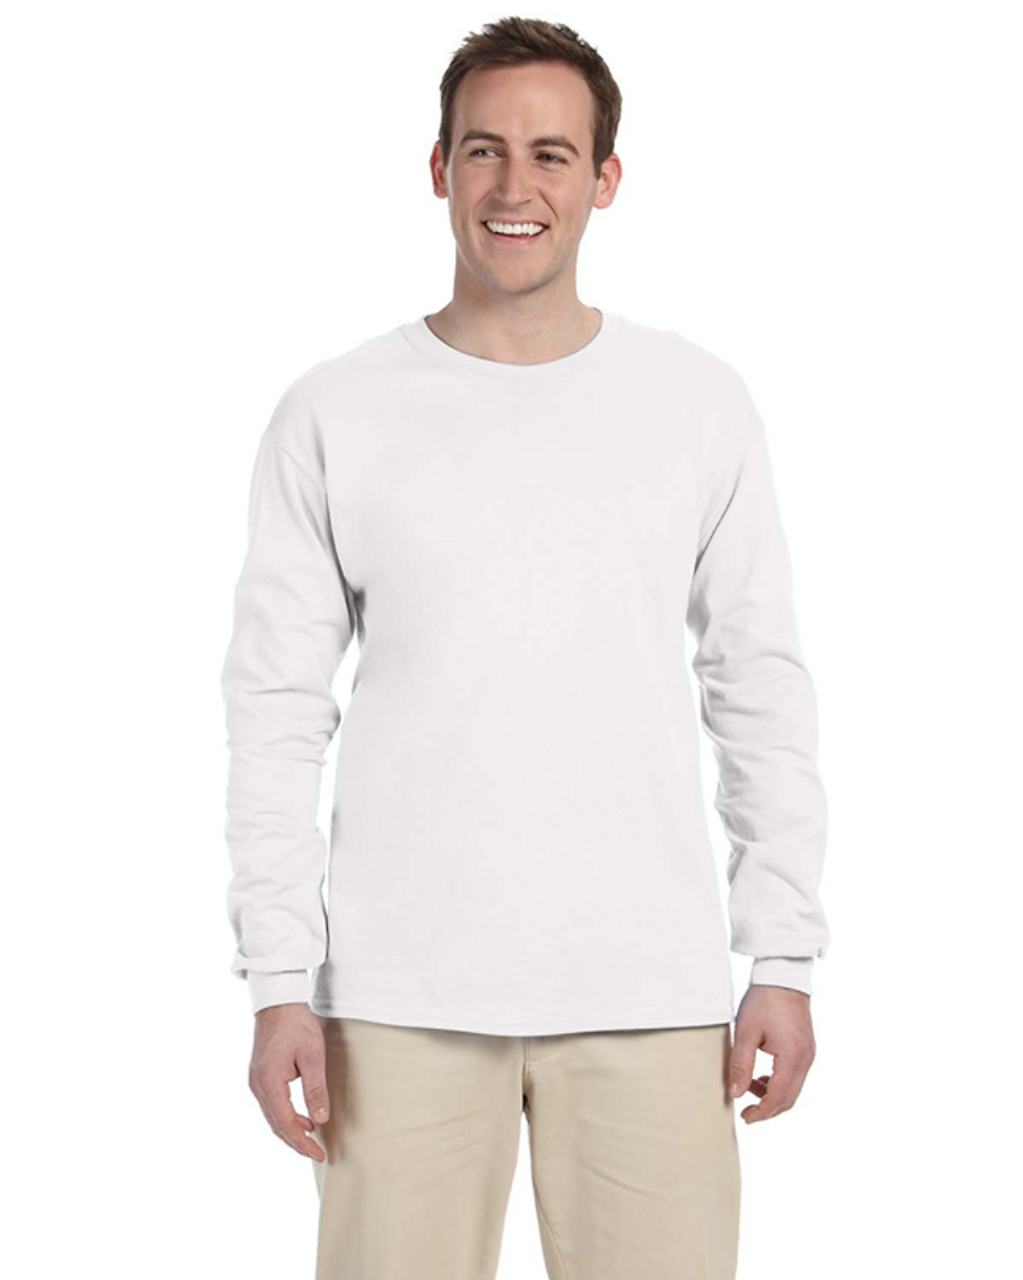 White - 4930 Fruit of the Loom 100% Heavy Cotton HD® Long-Sleeve T-Shirt | Blankclothing.ca